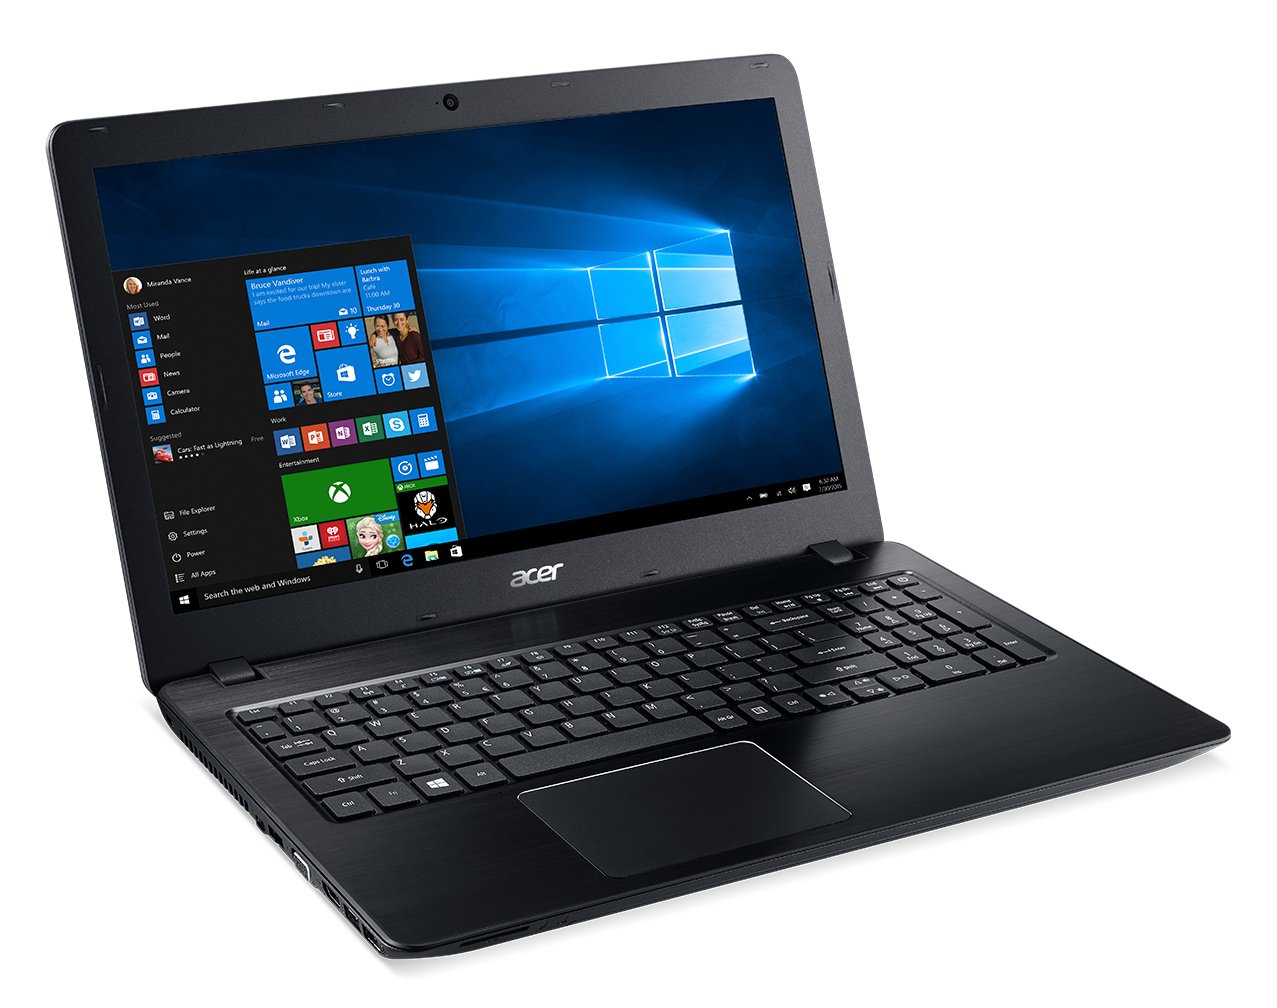 ACER ASPIRE F5-571 NVIDIA GRAPHICS WINDOWS 8.1 DRIVER